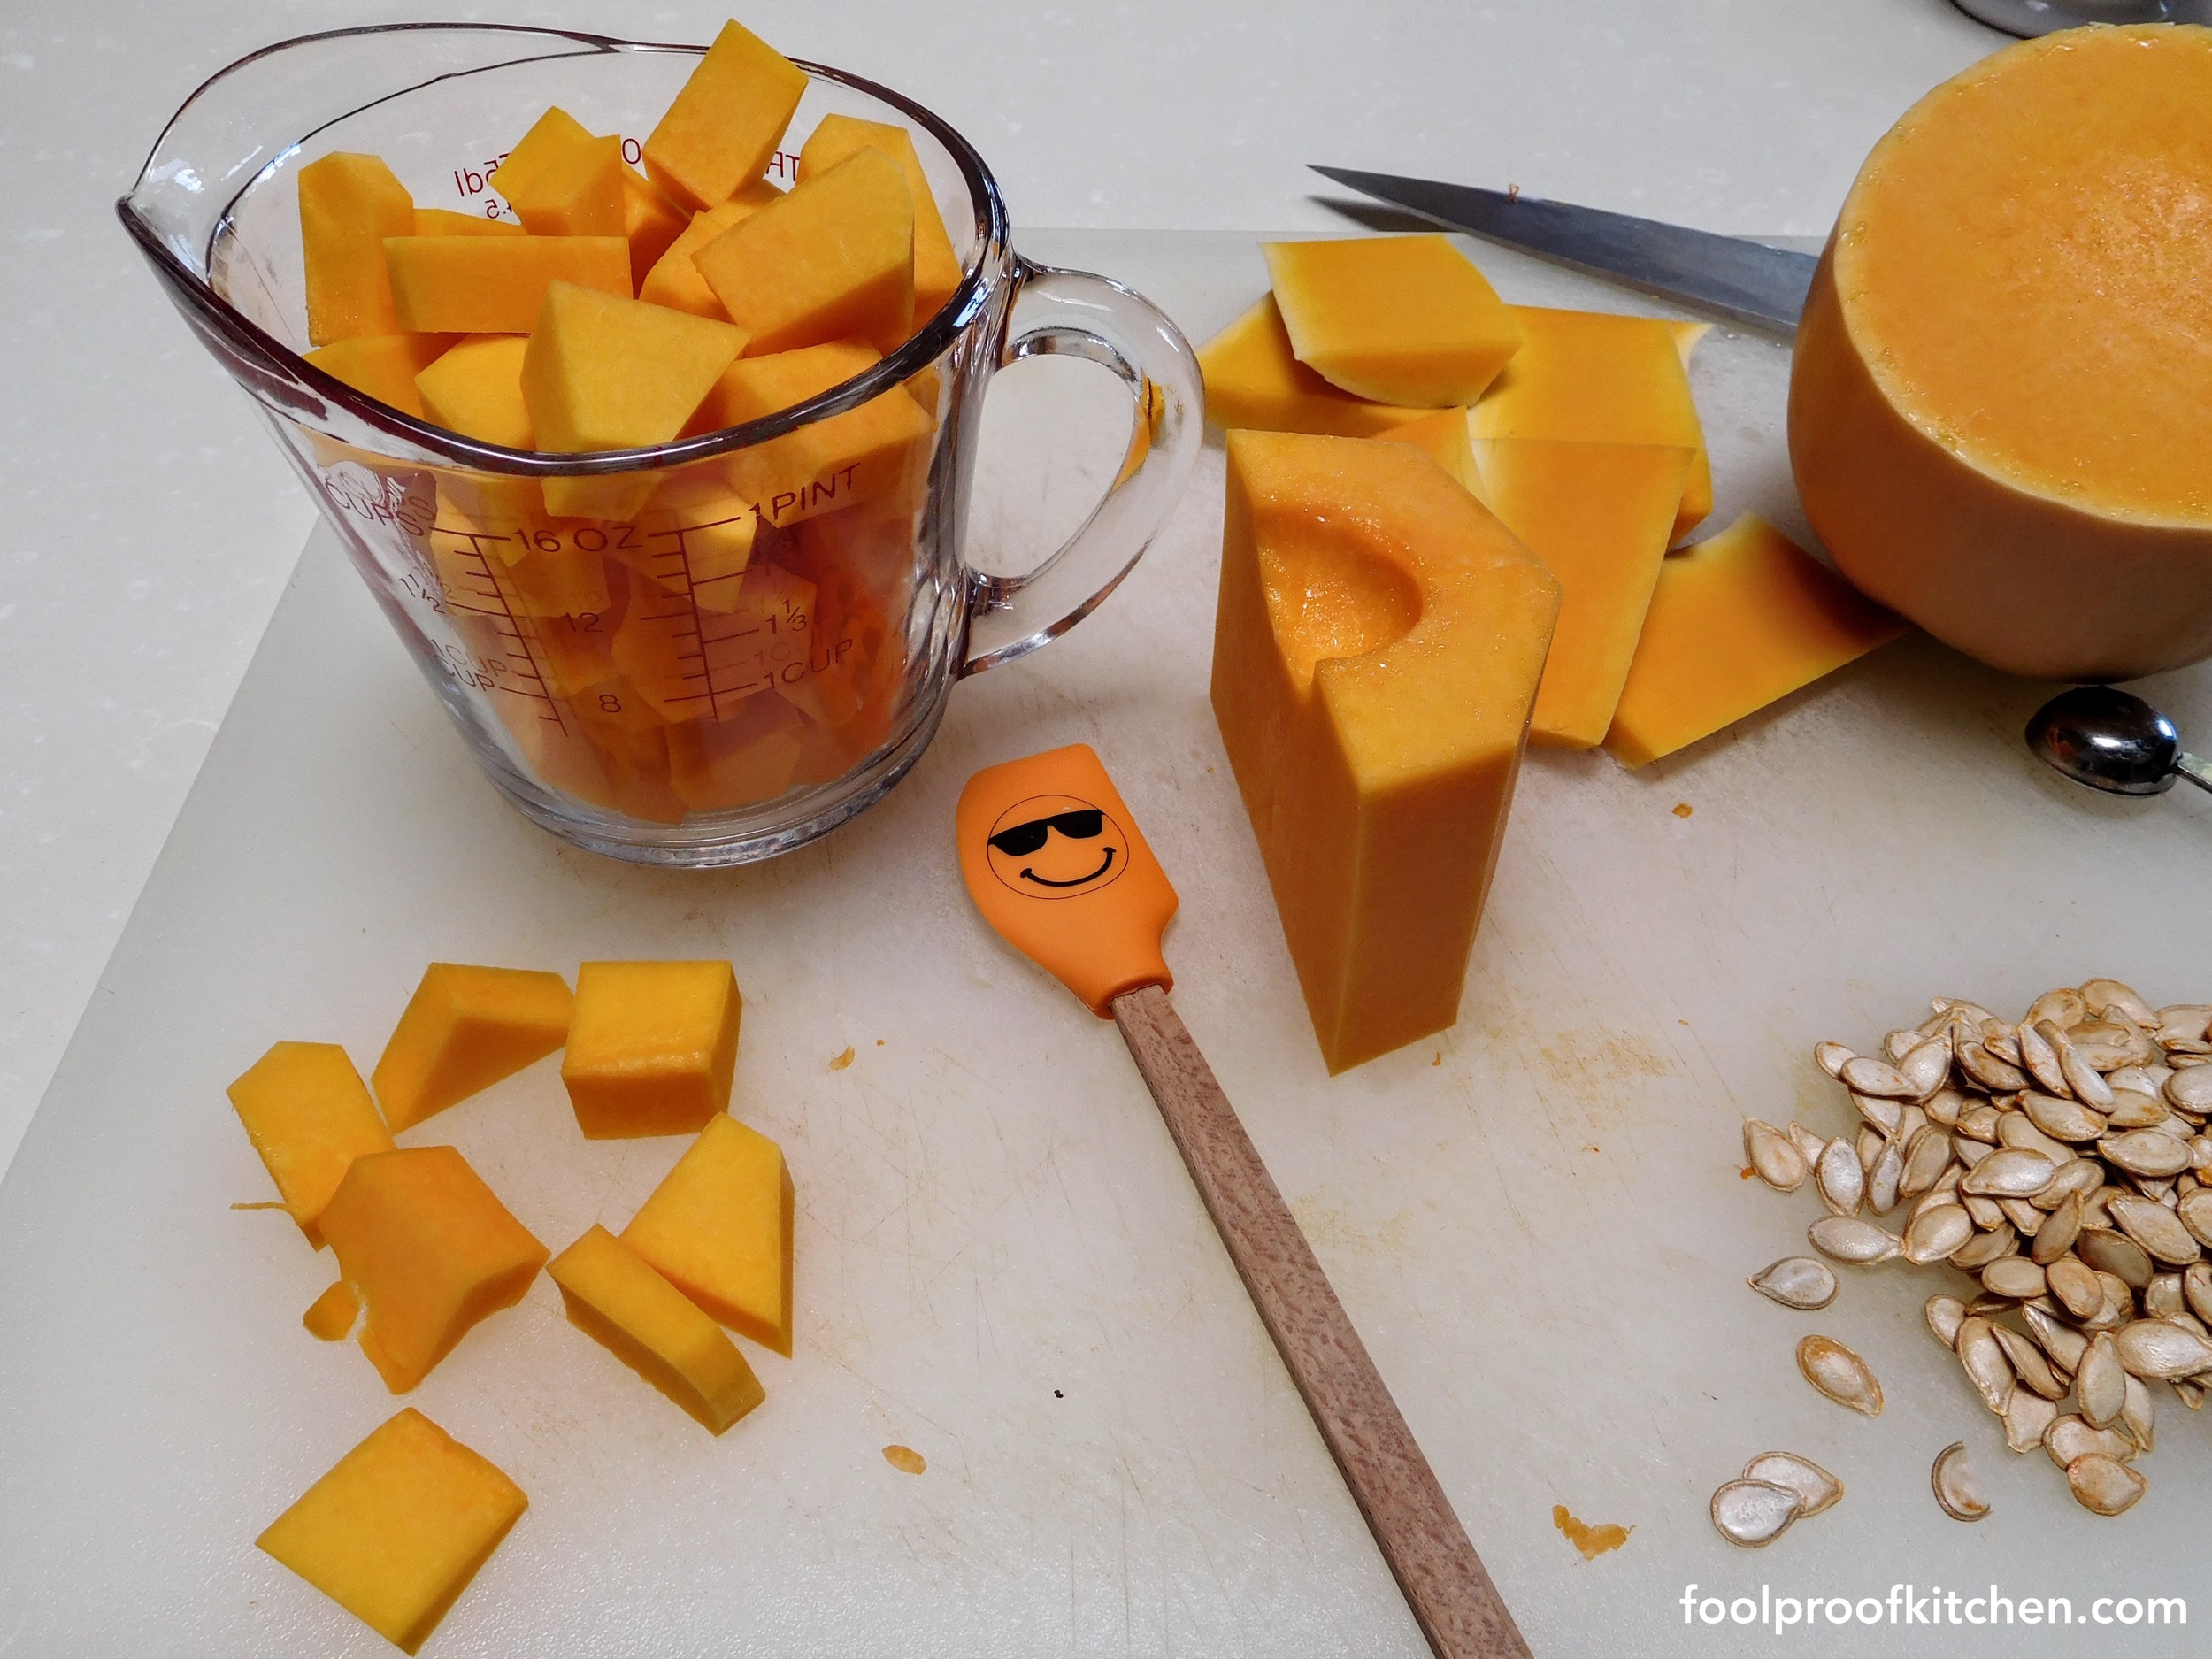 Prepping a squash - of course my spatula needs to get in on the action!